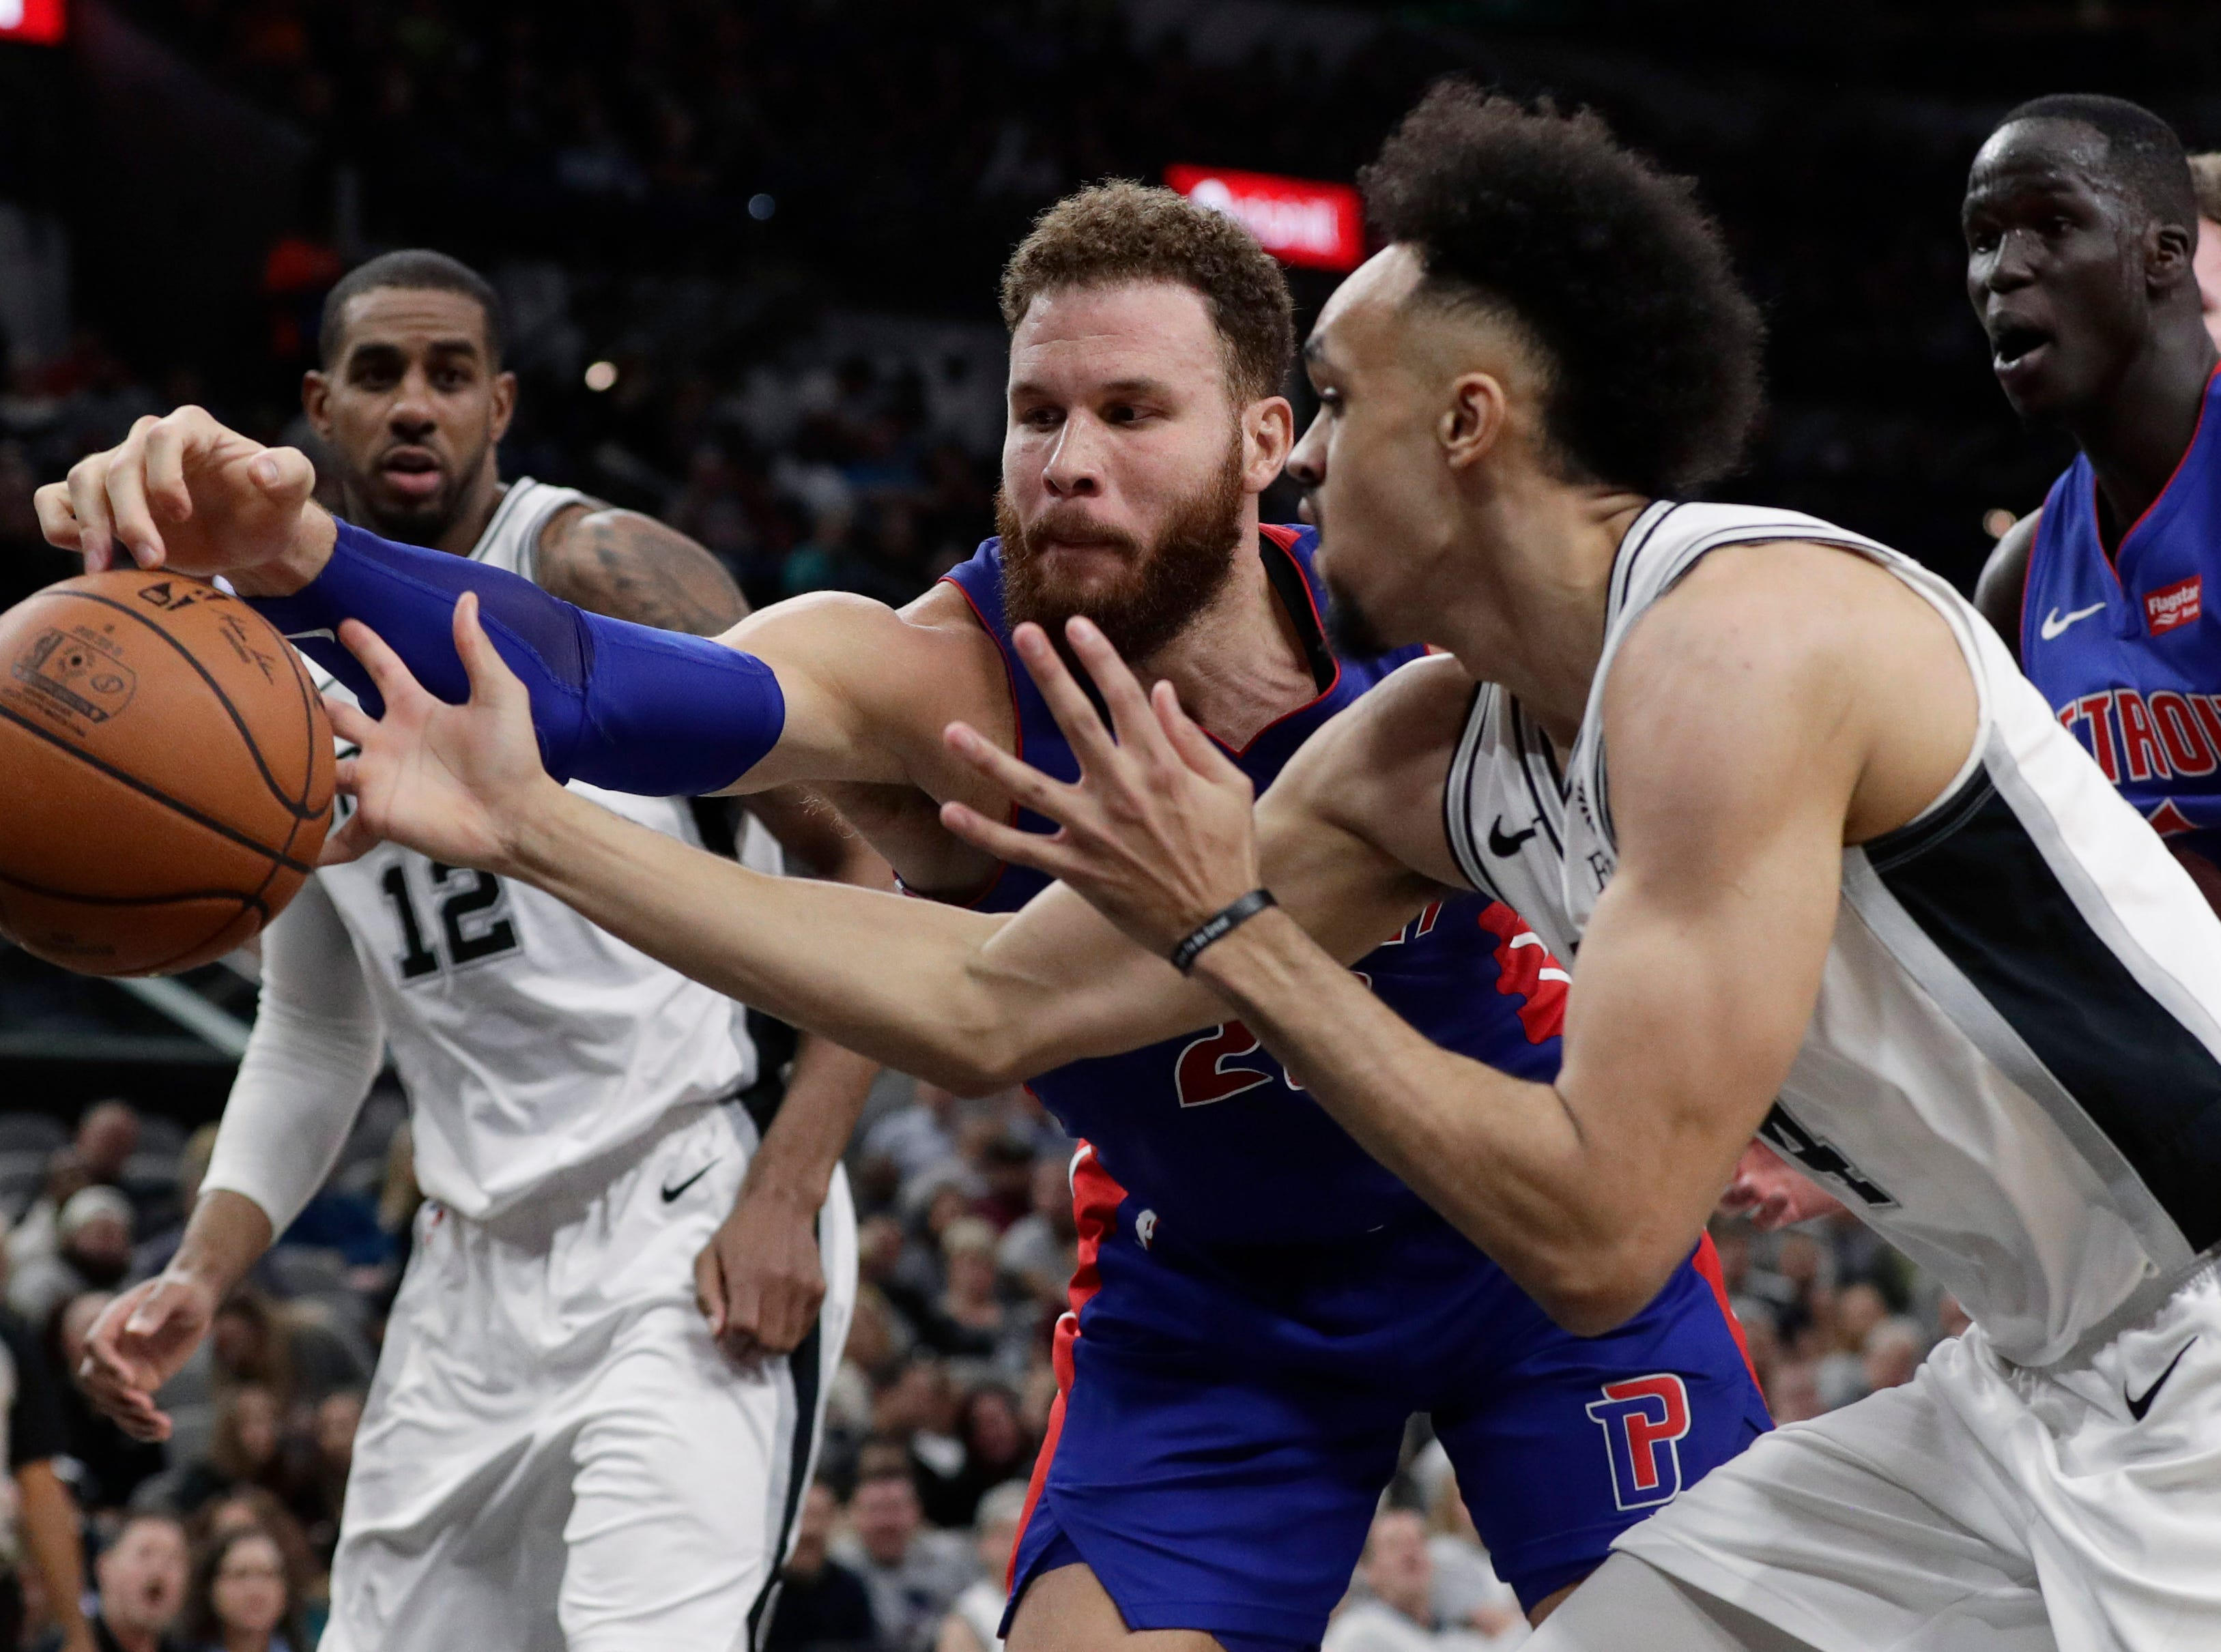 Detroit Pistons forward Blake Griffin, center, and San Antonio Spurs guard Derrick White, right, reach for the ball during the first half.